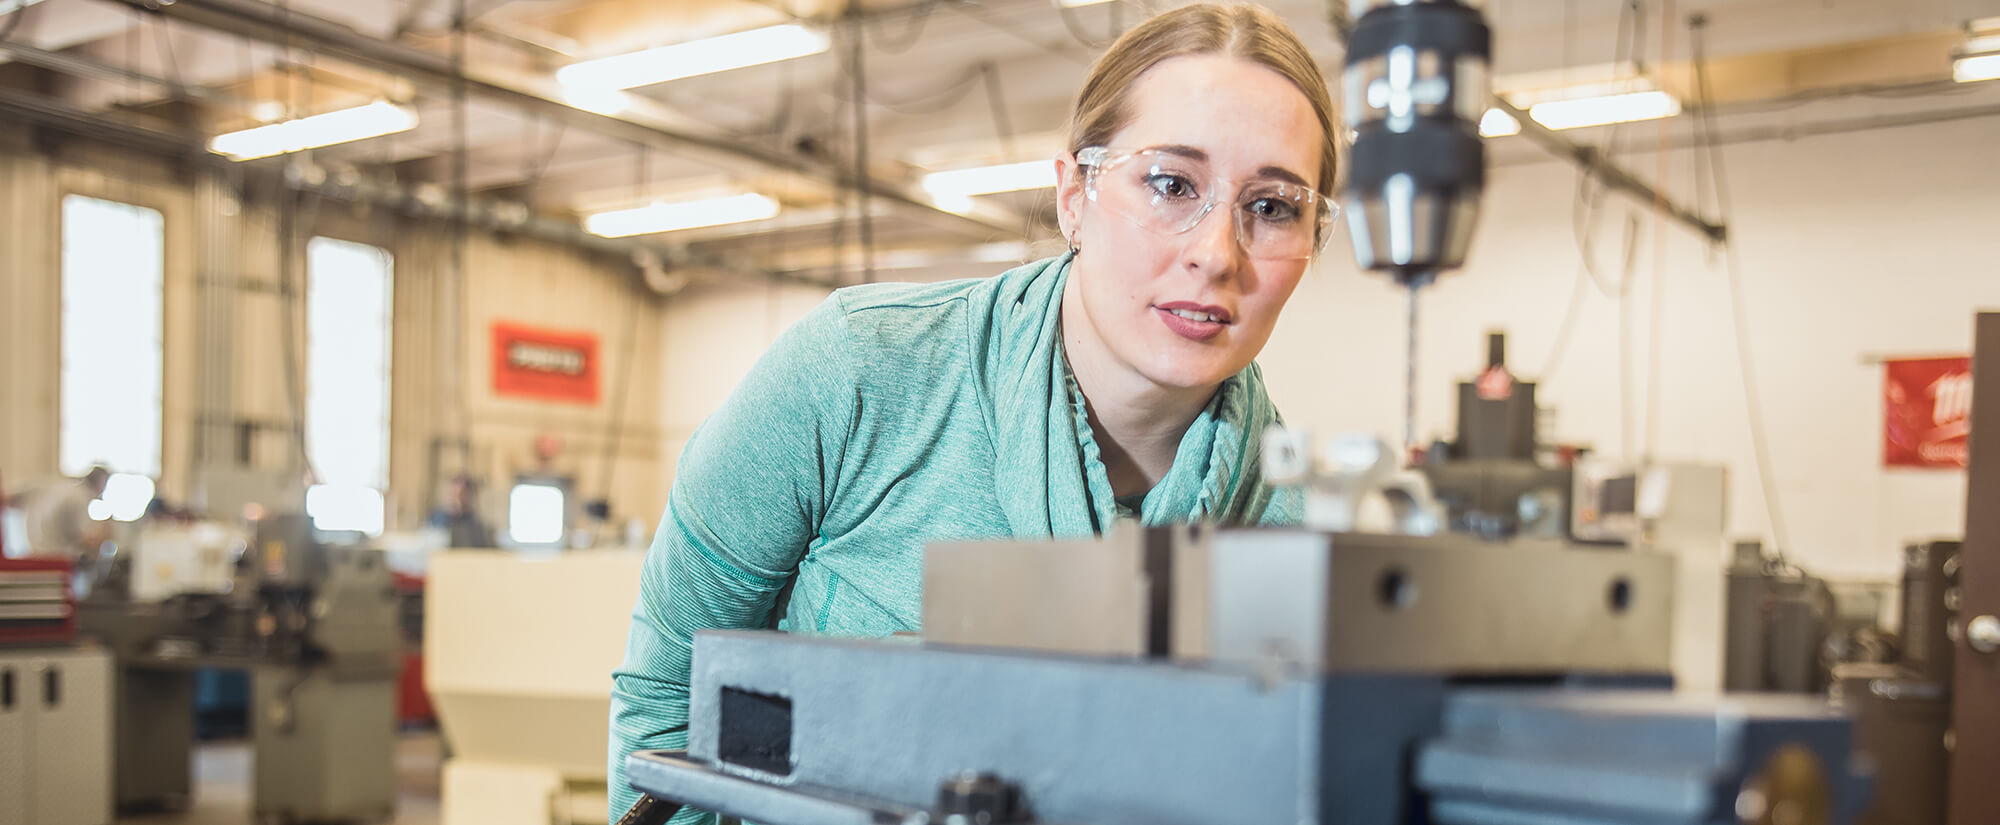 A female student wearing safety glasses in a machine tool classroom.